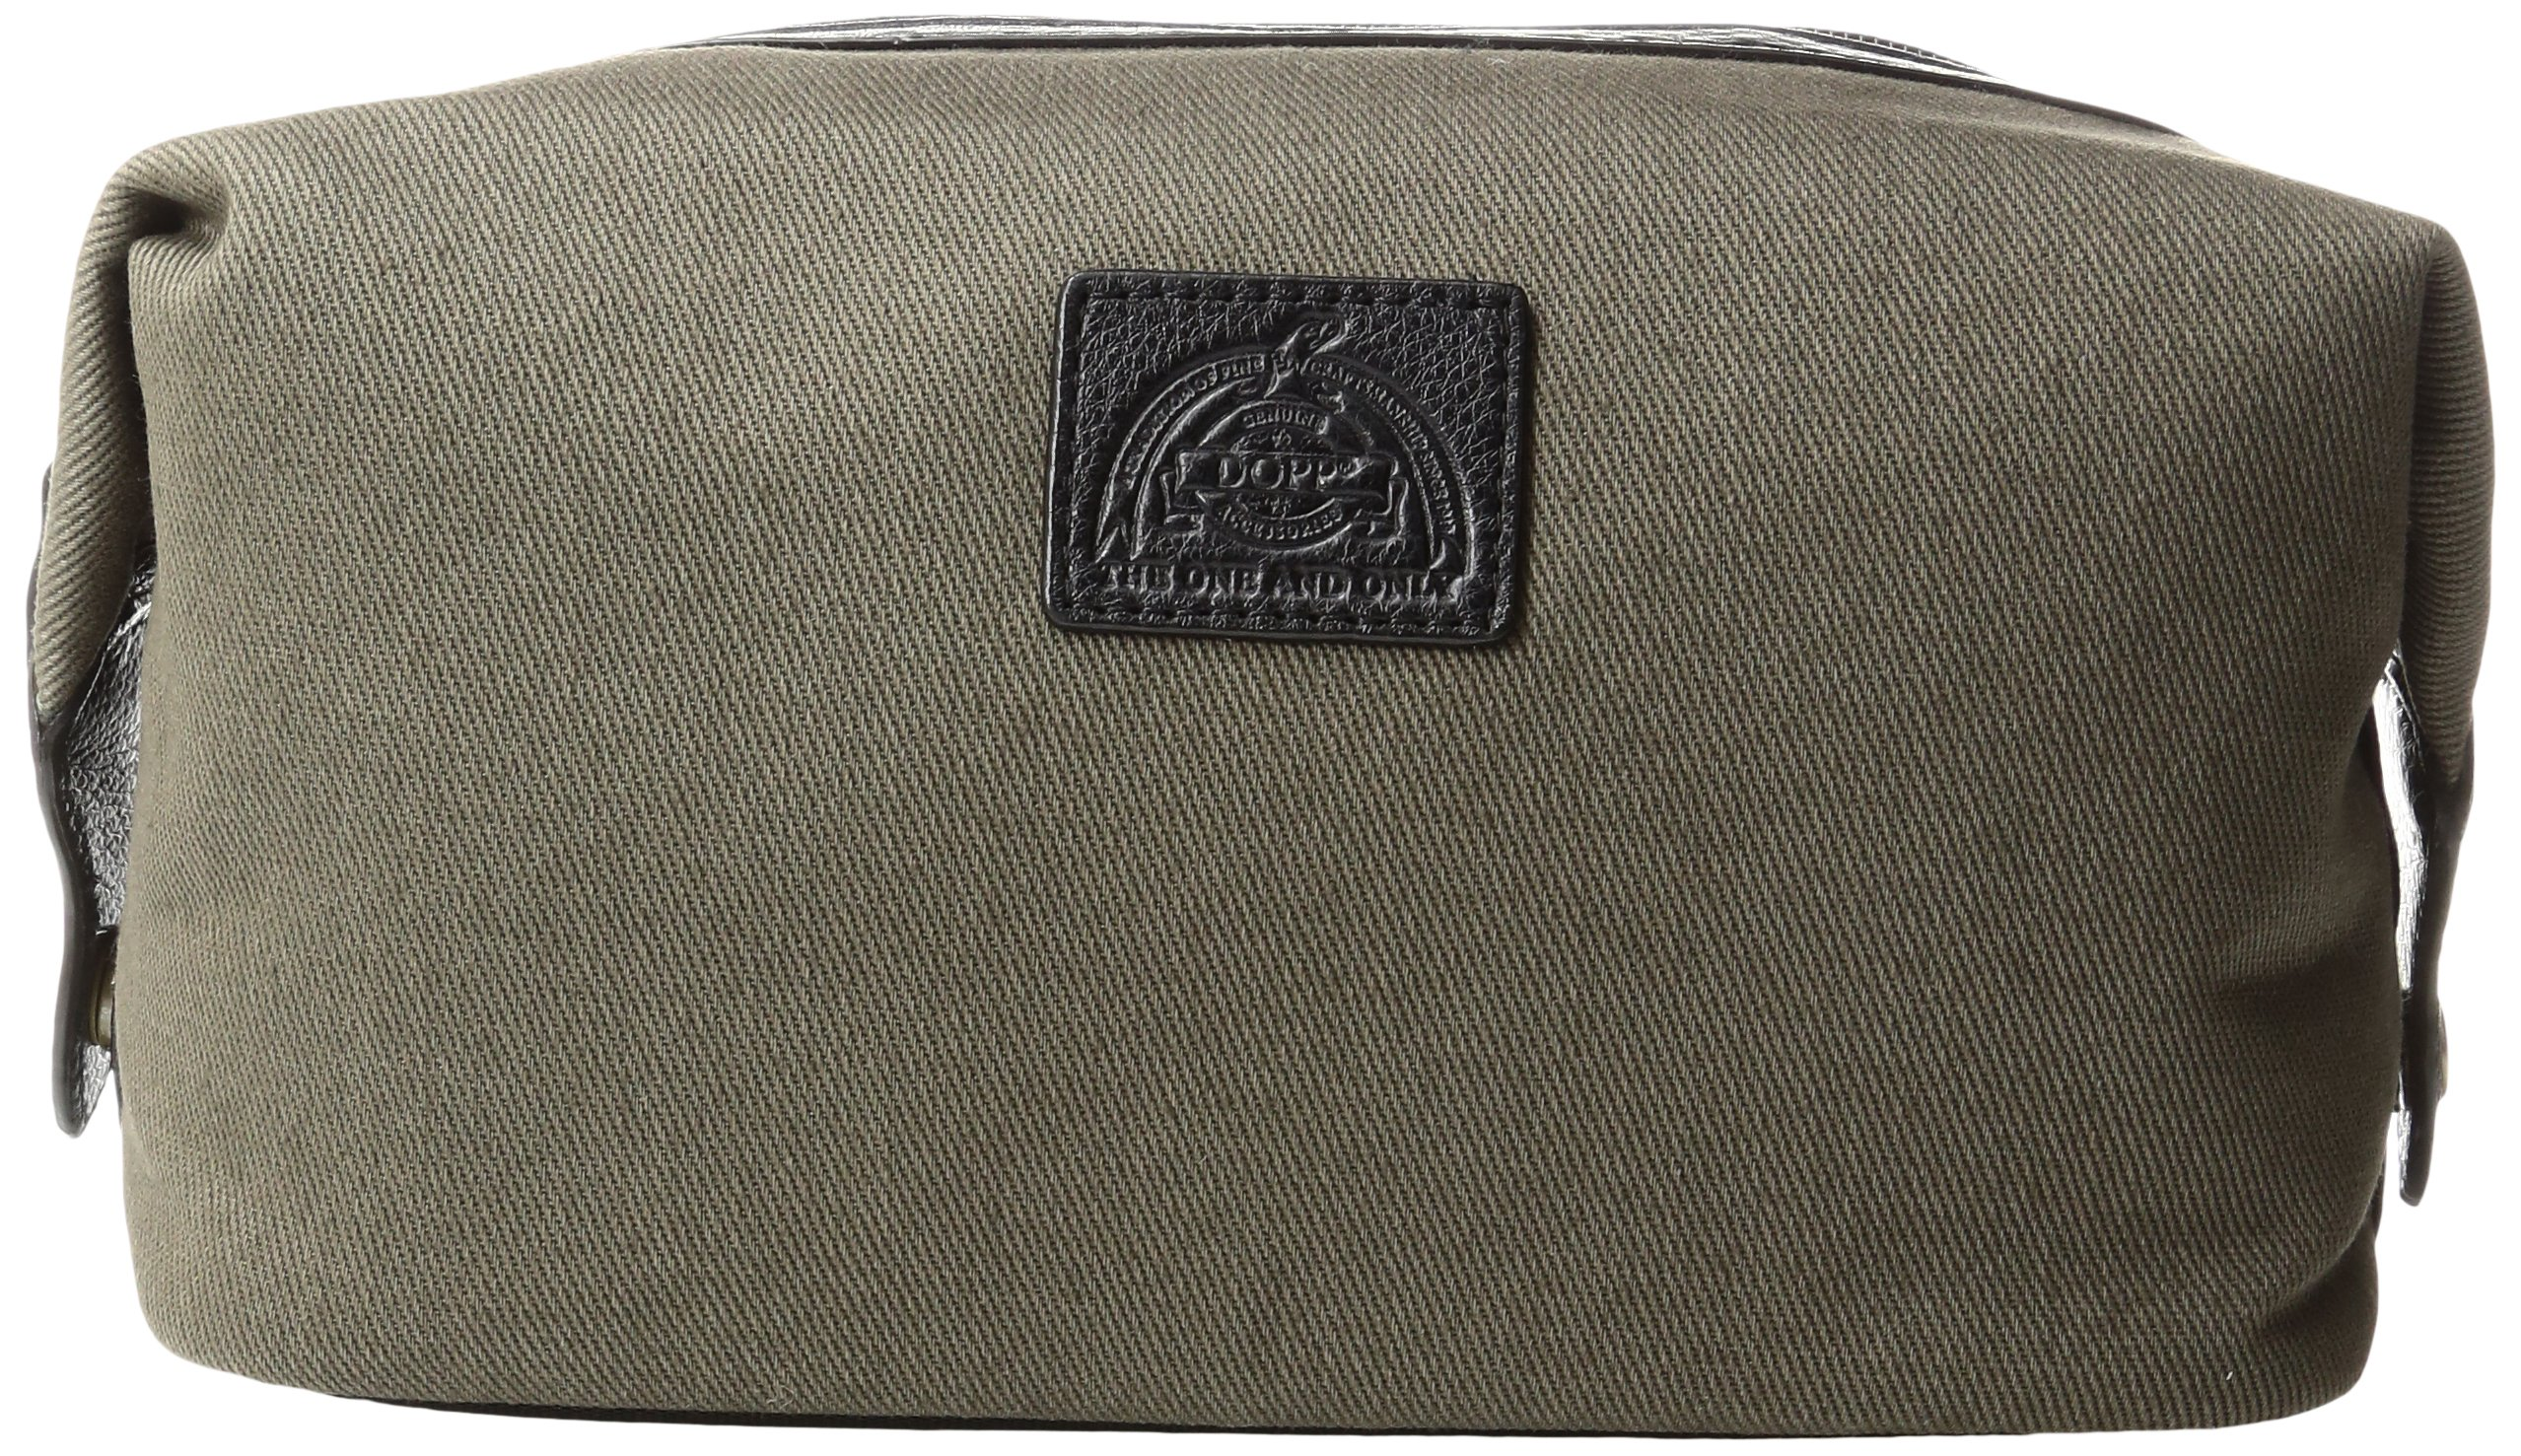 Dopp Men's Hampton Carry-All Kit-Cotton Twill with Leather Trim, Olive